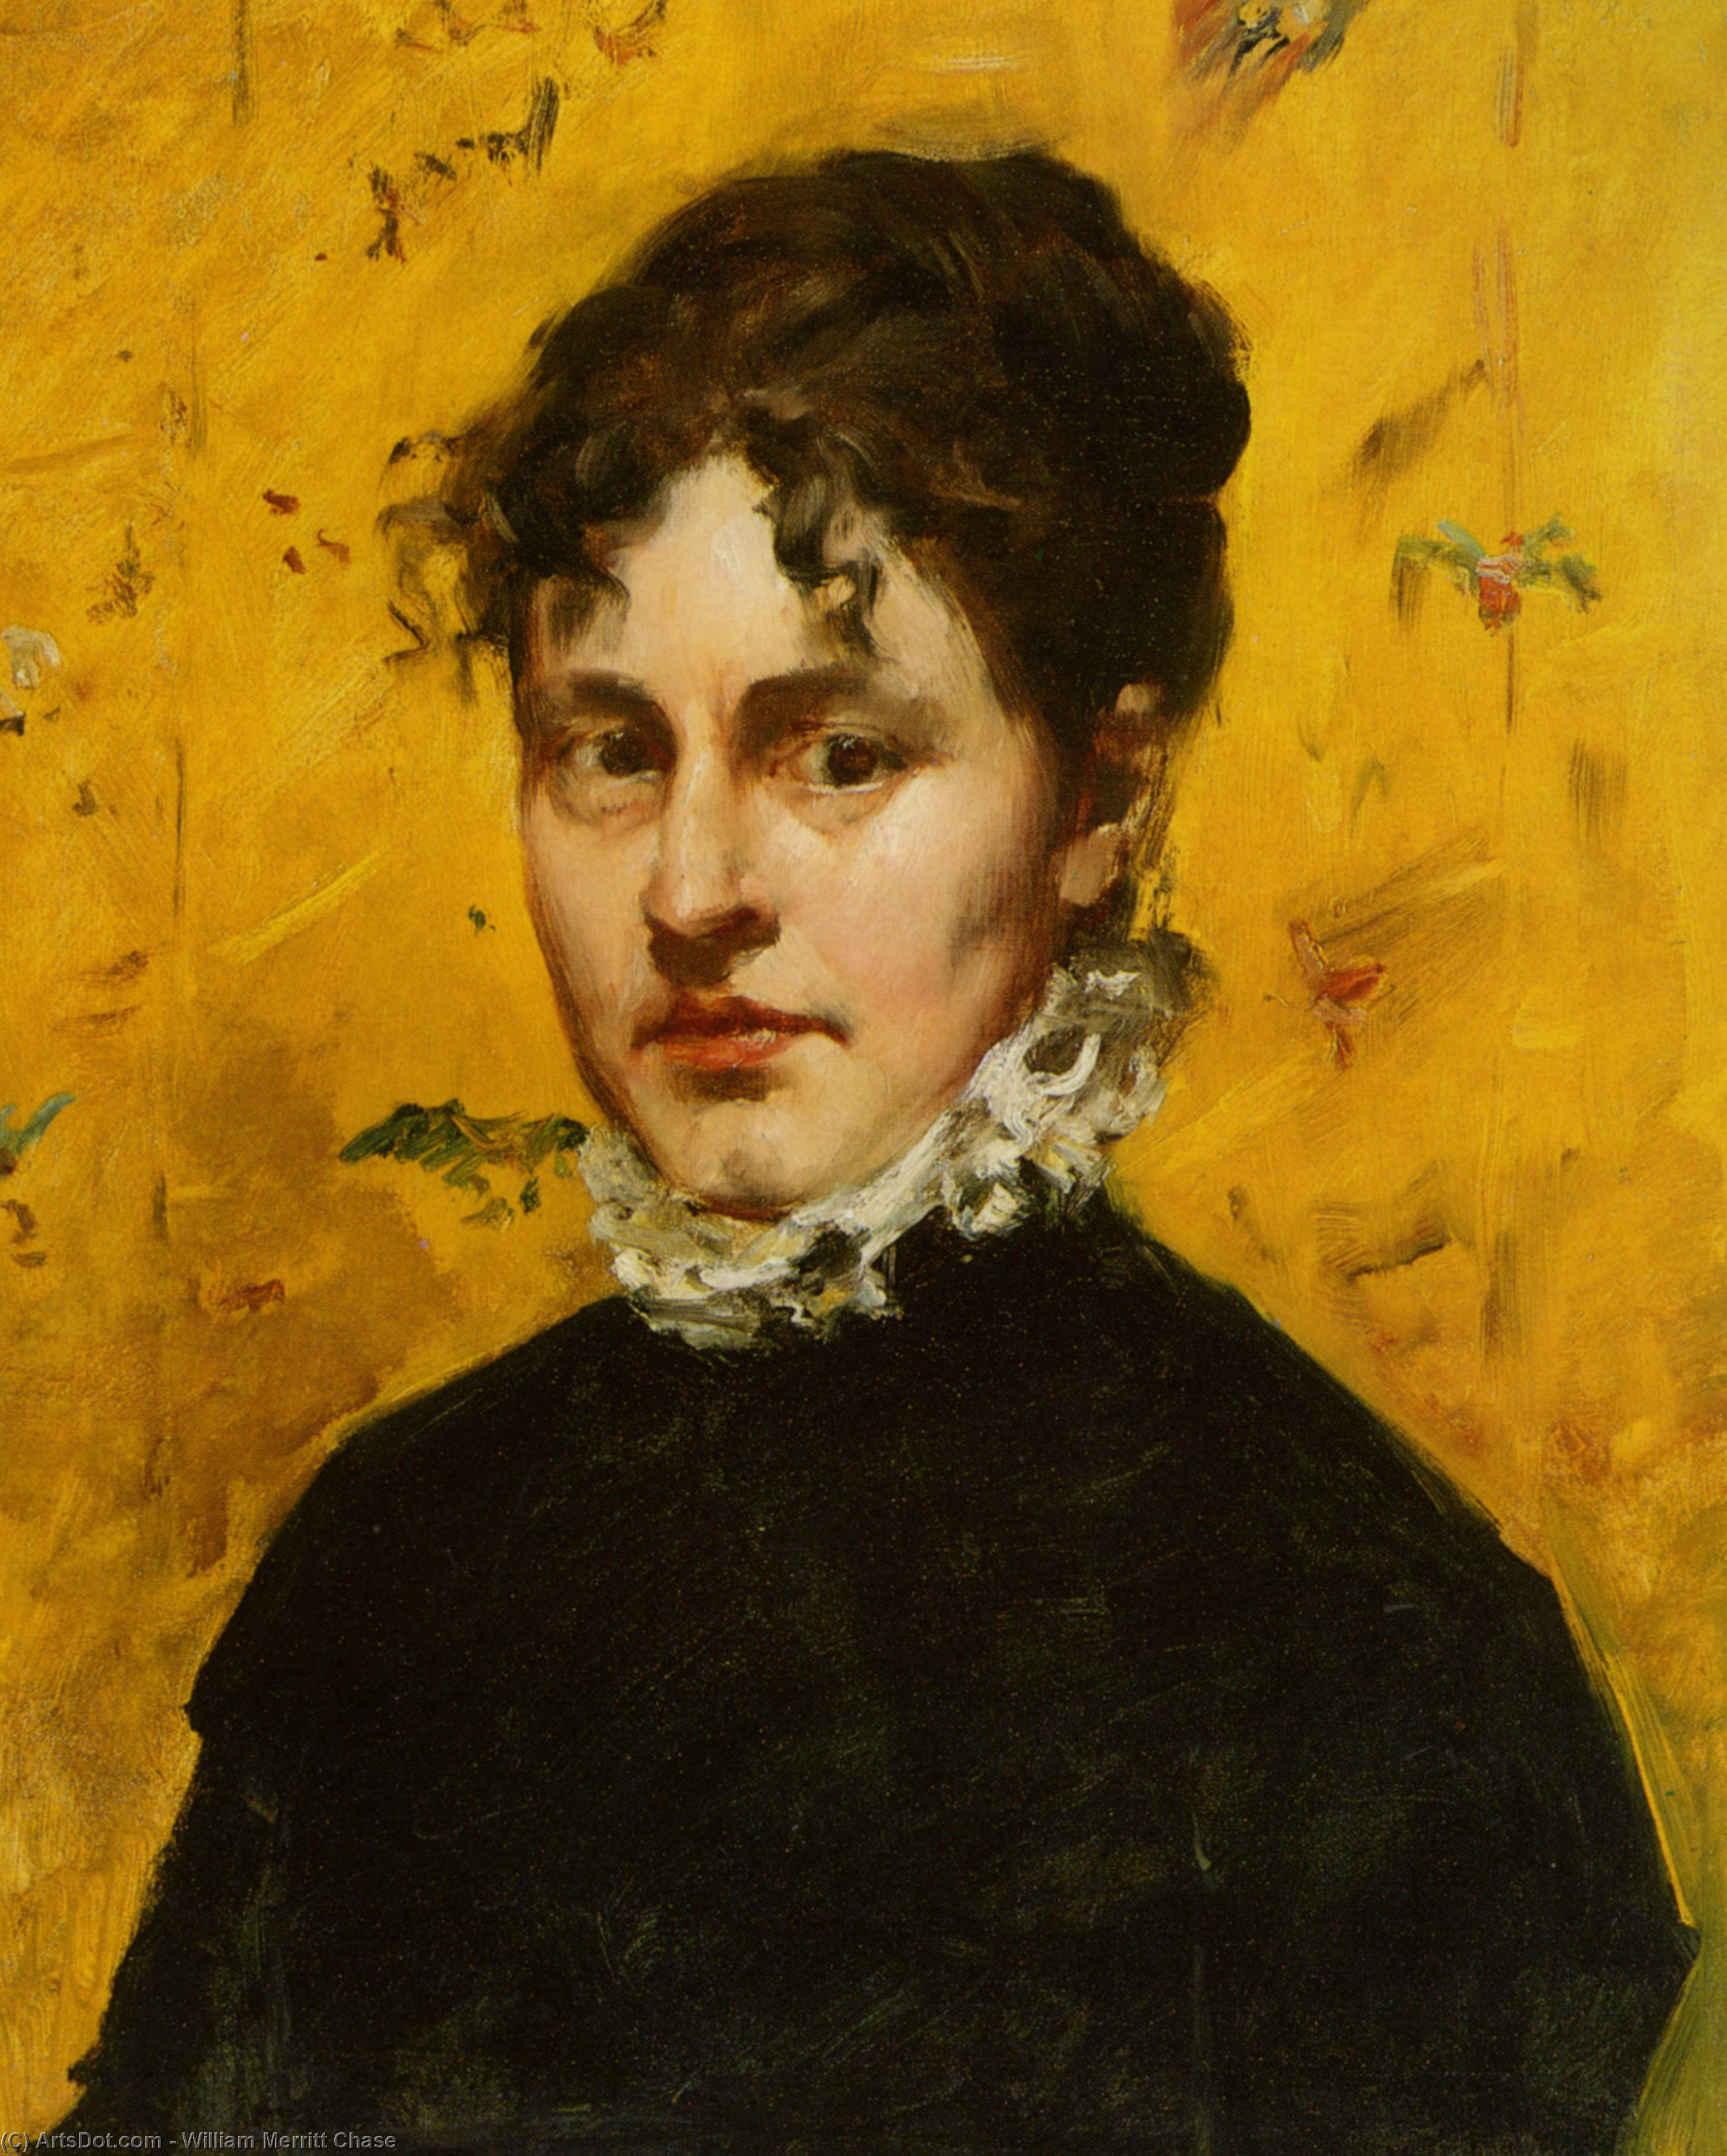 Portrait of the Artist's Sister-in-Law, Oil On Canvas by William Merritt Chase (1849-1916, United States)